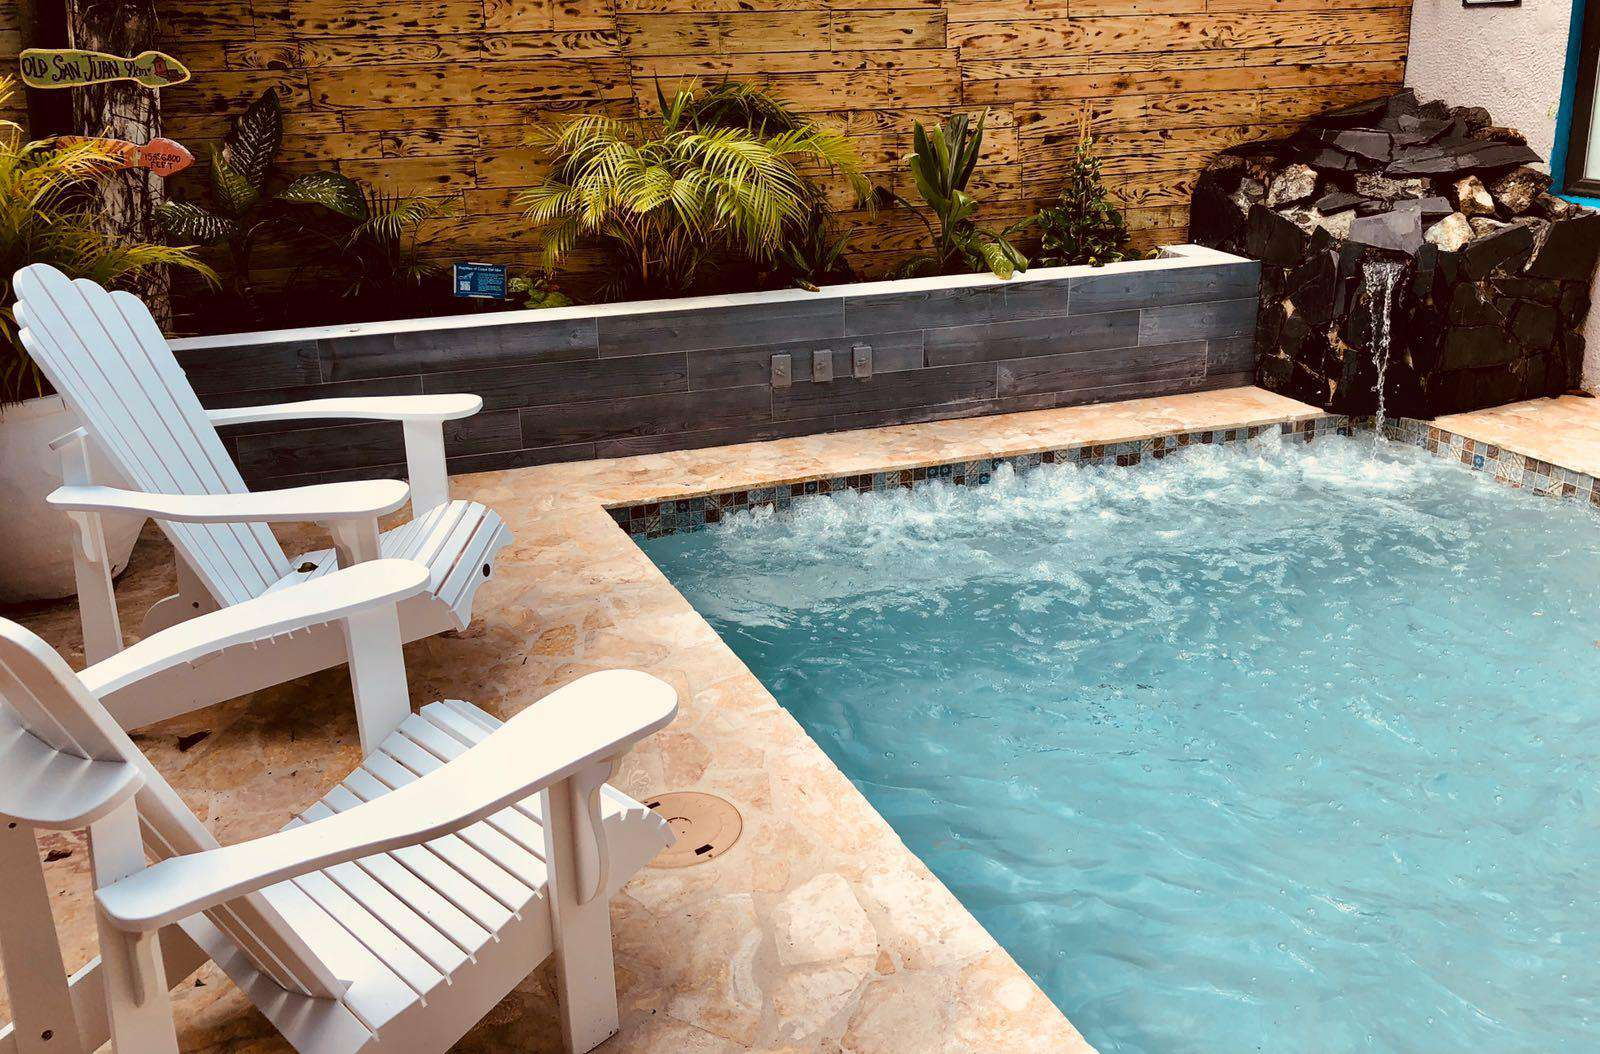 Say hello to your PRIVATE pool with waterfall